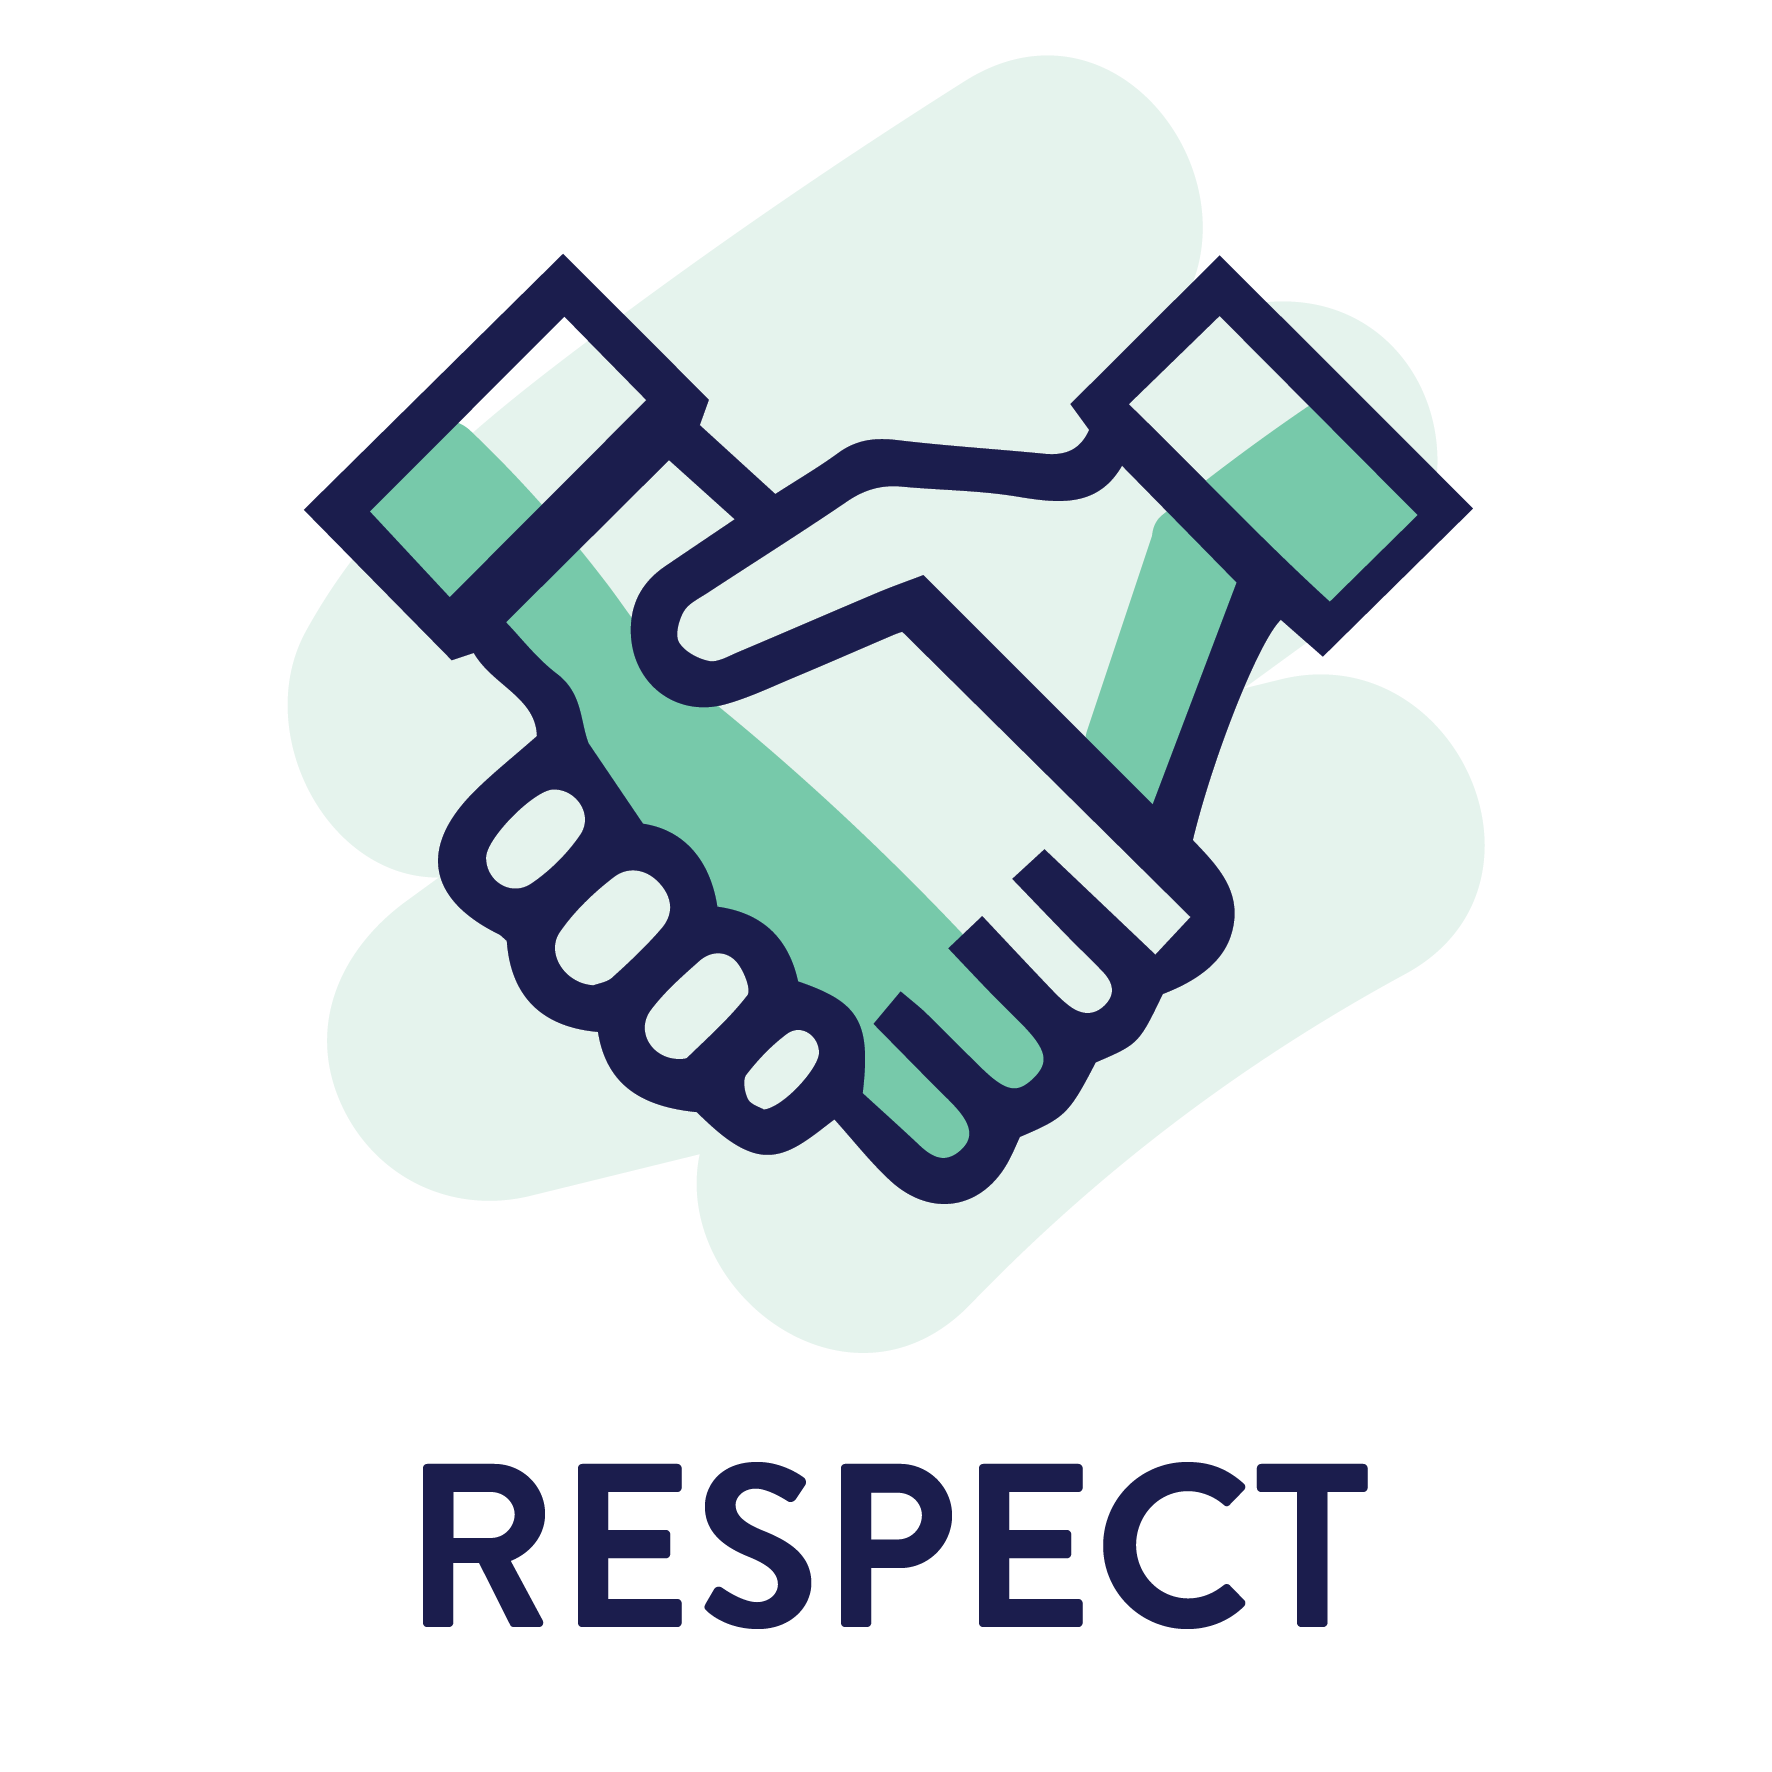 St Mary's College Melbourne Values | RESPECT